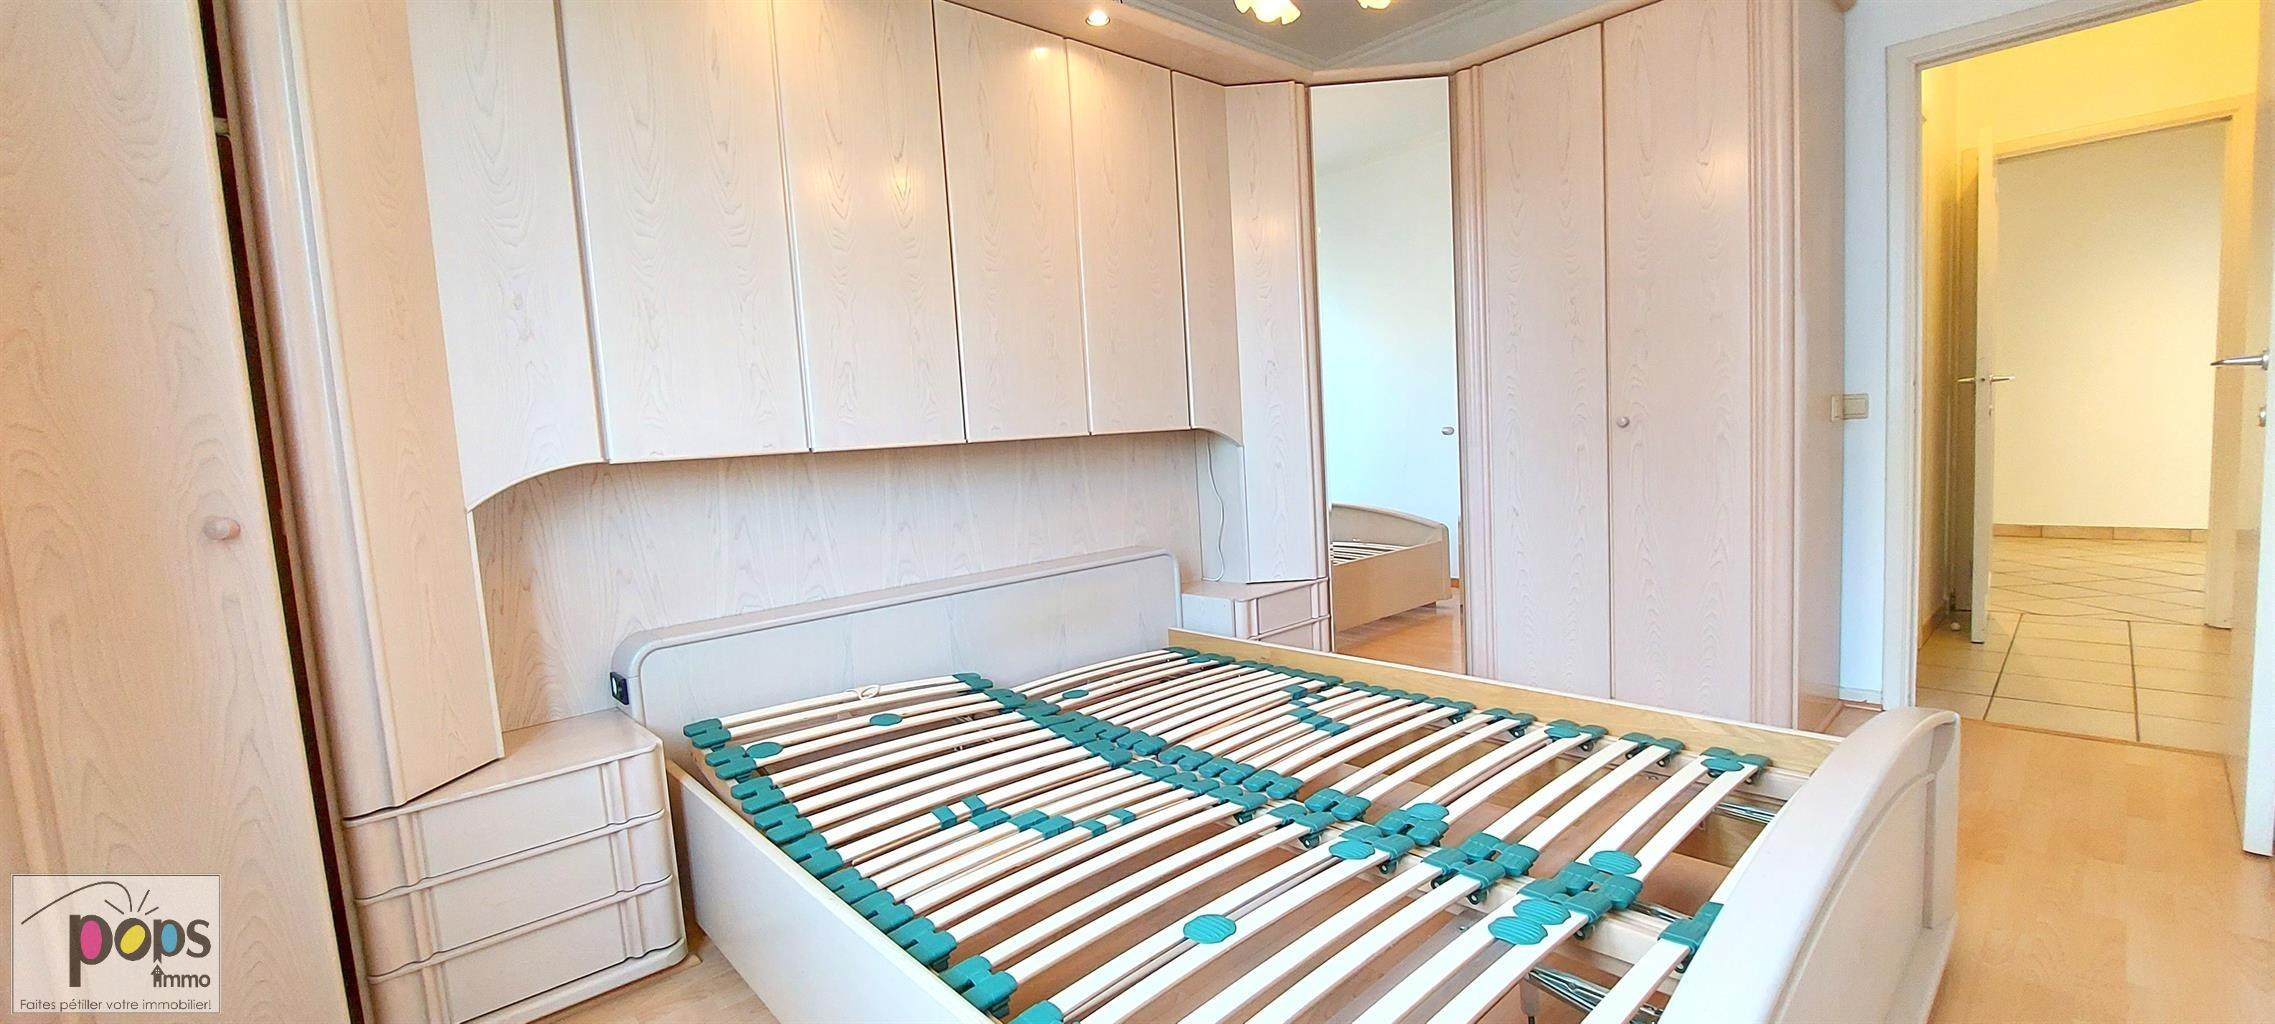 Appartement - Uccle - #4311863-14